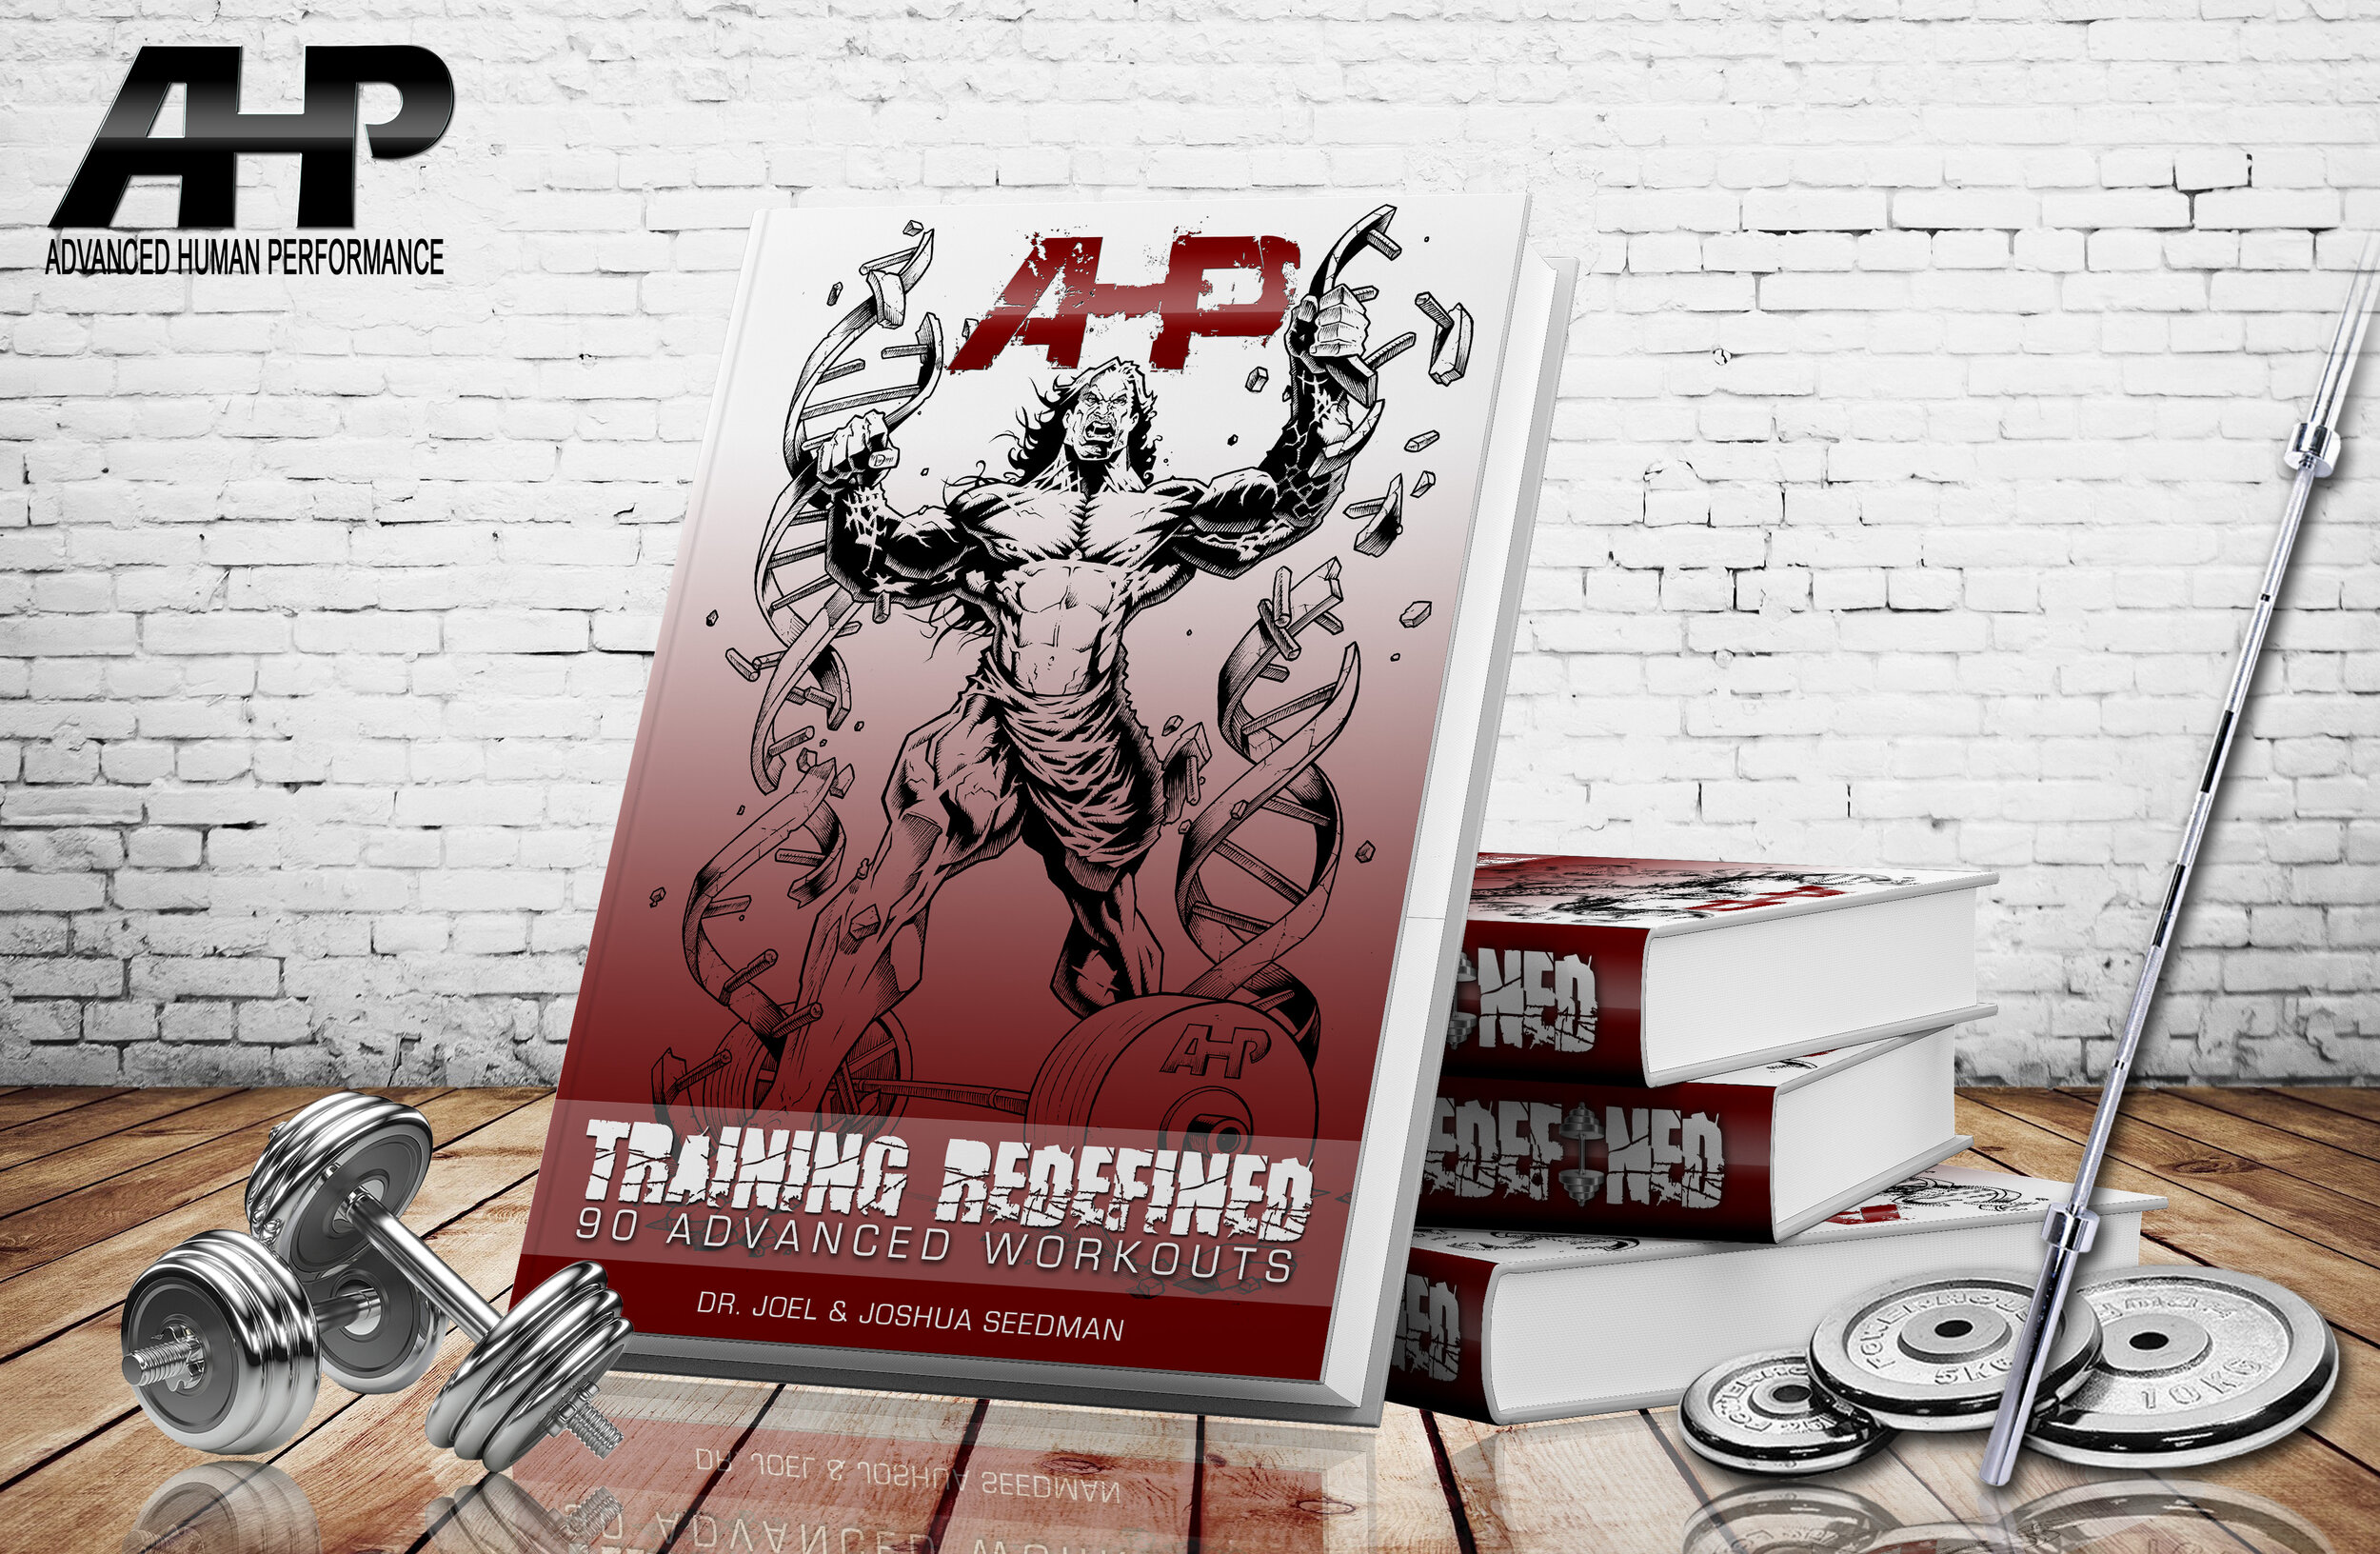 Training Redefined  - 90 Advanced EI Workouts -